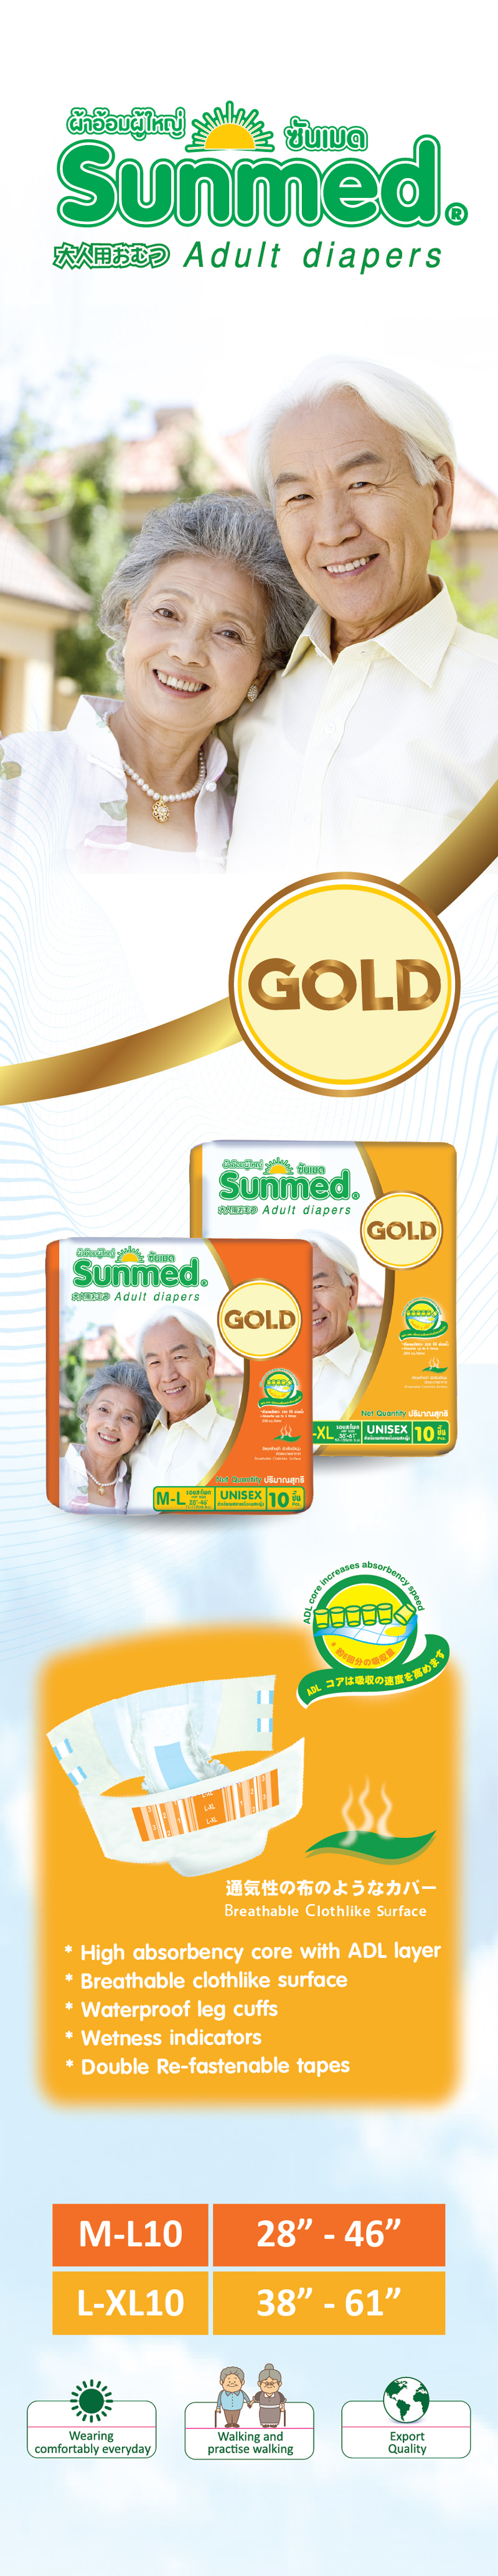 SunMed Adult Diapers Gold